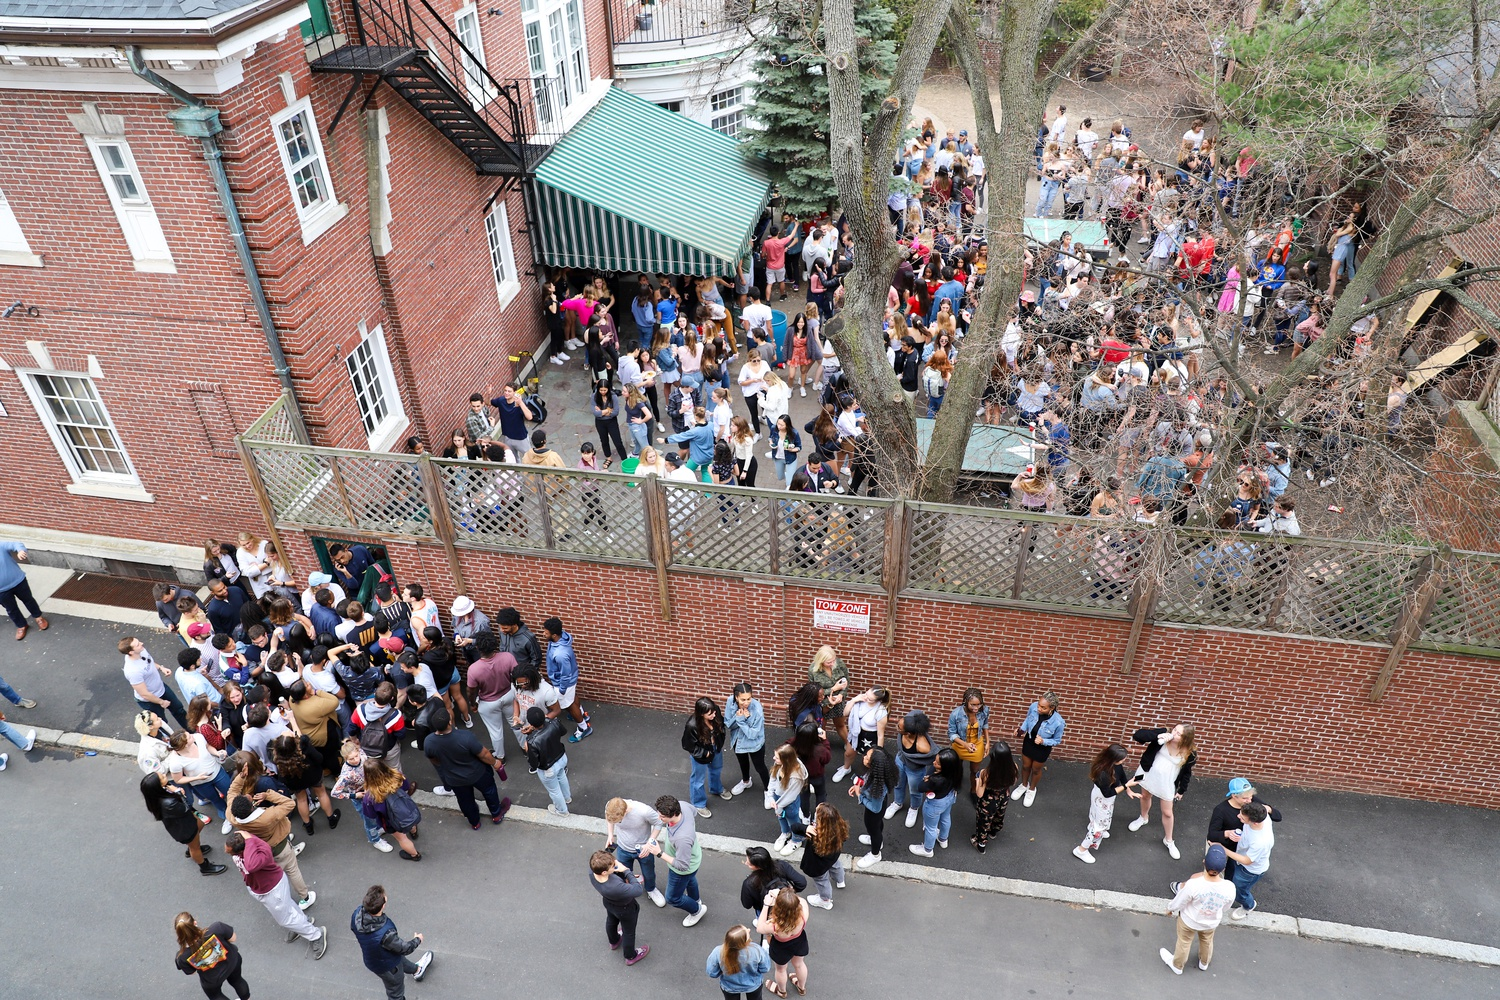 The Owl, a final club at Harvard, hosted a daytime party following the College's announcement that students must evacuate campus.